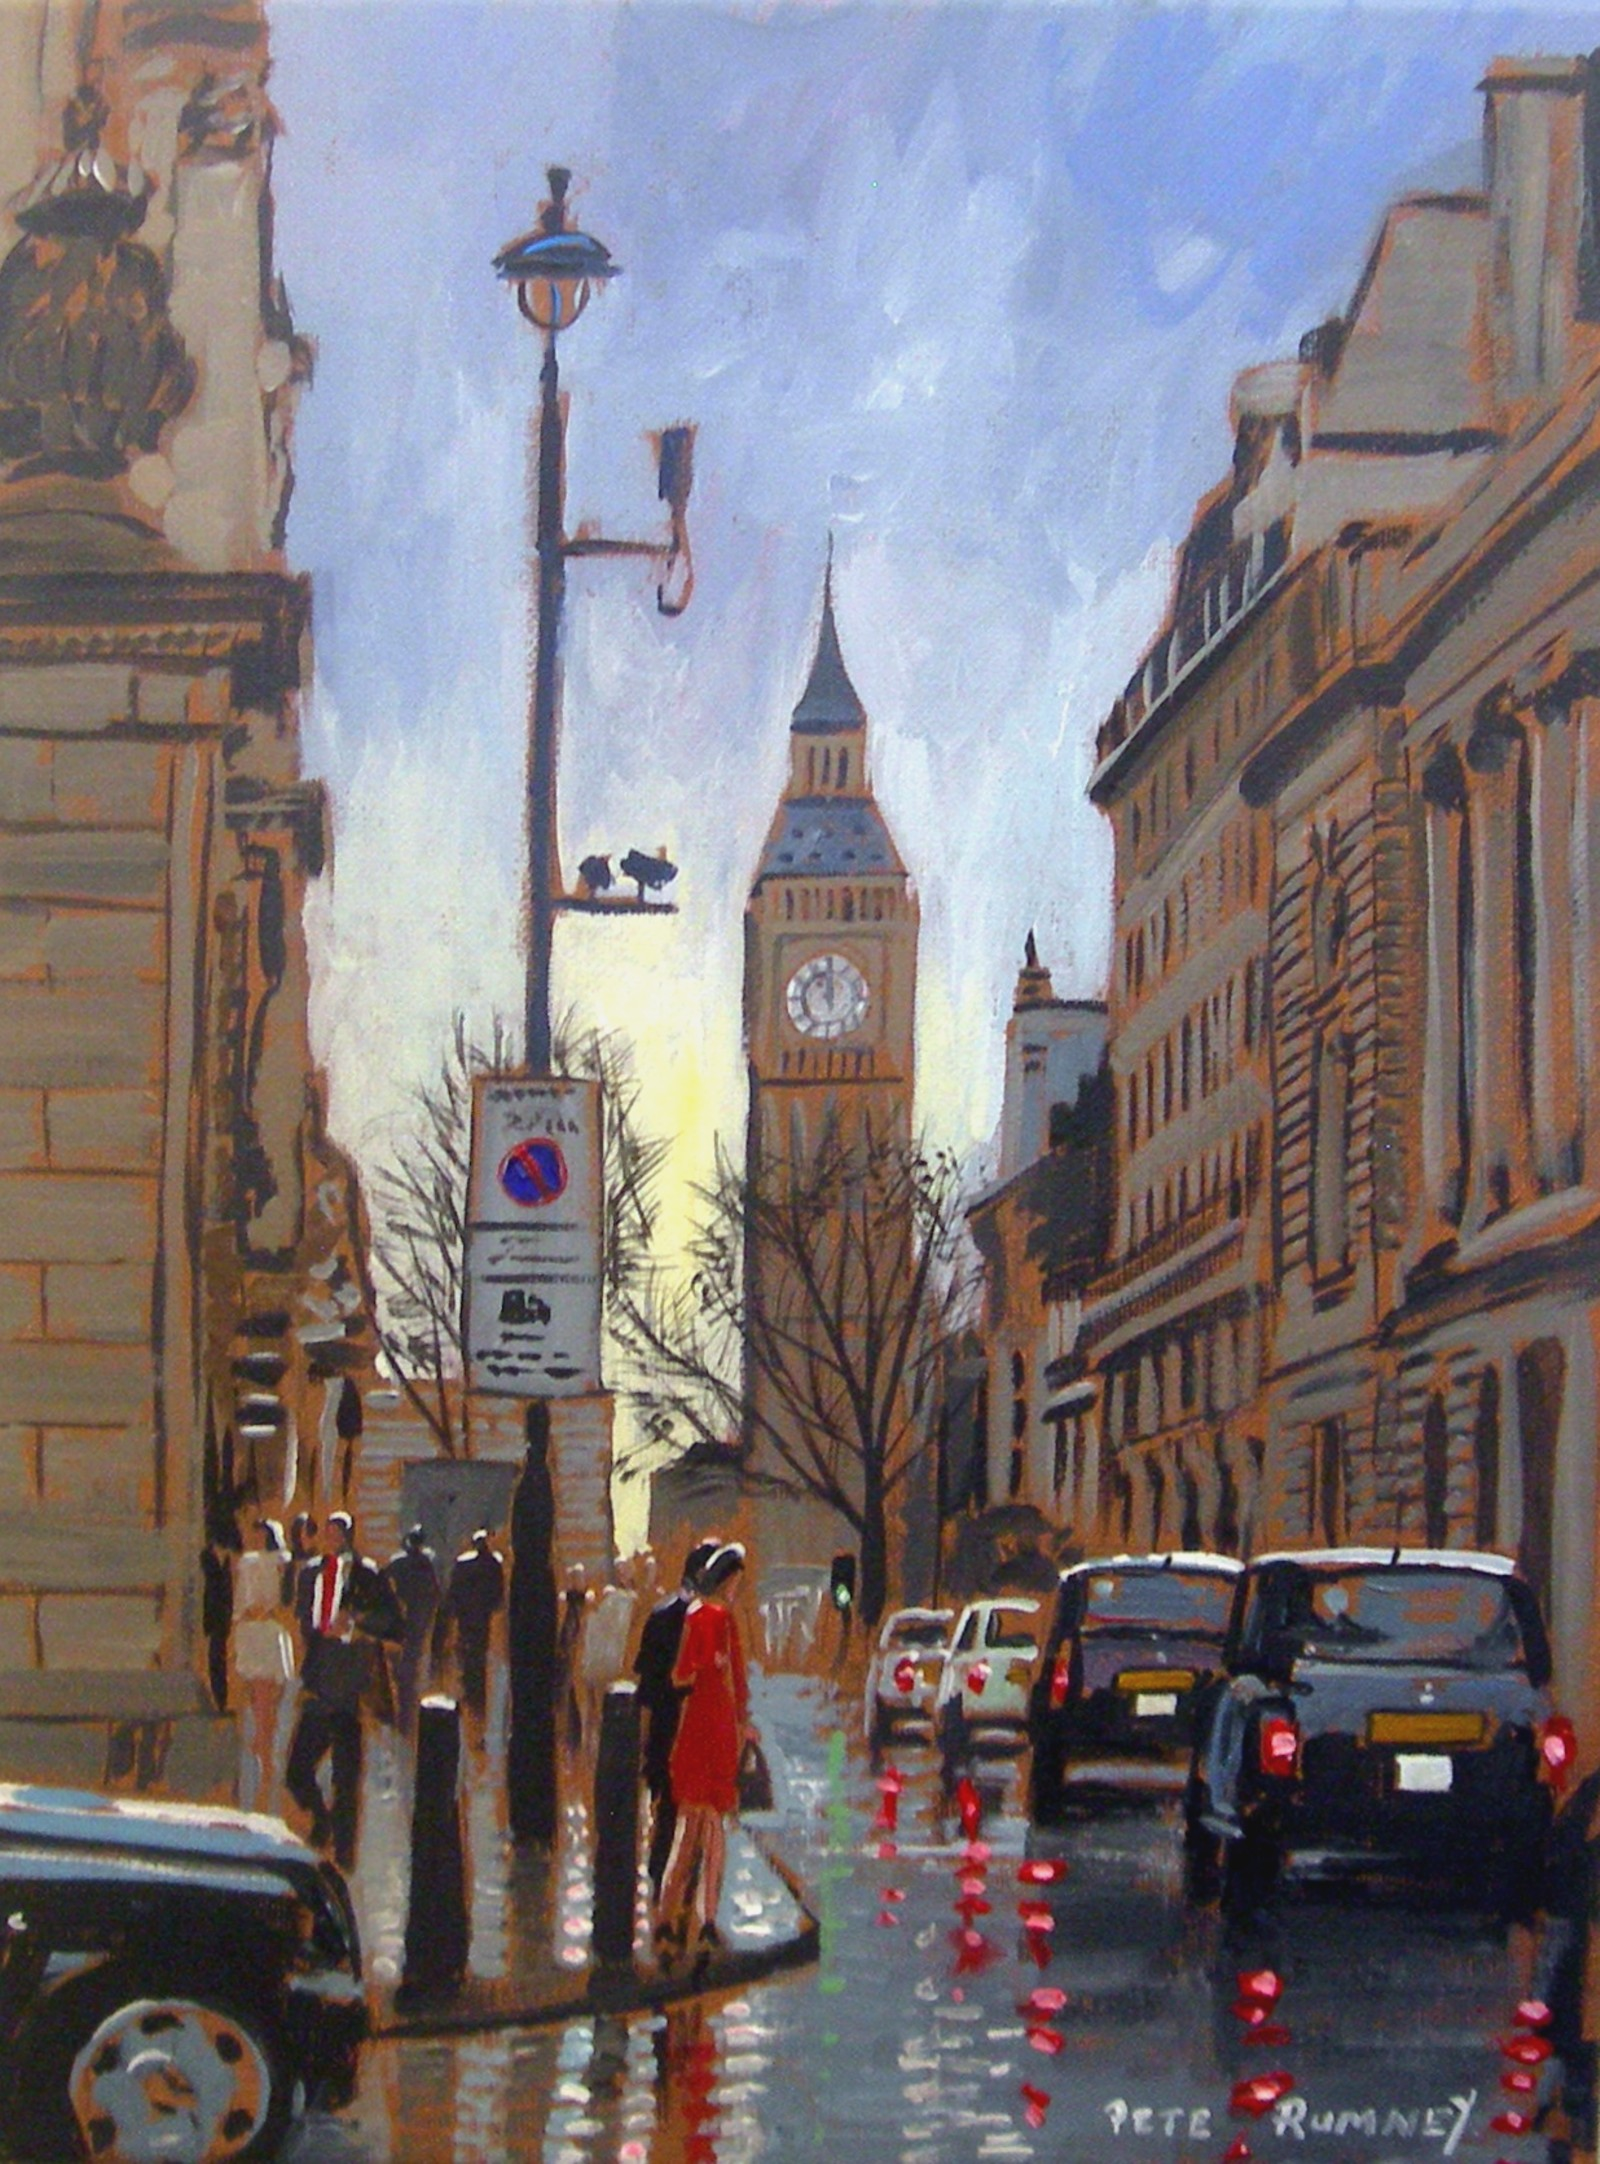 Canvas Paintings and Art by Pete Rumney